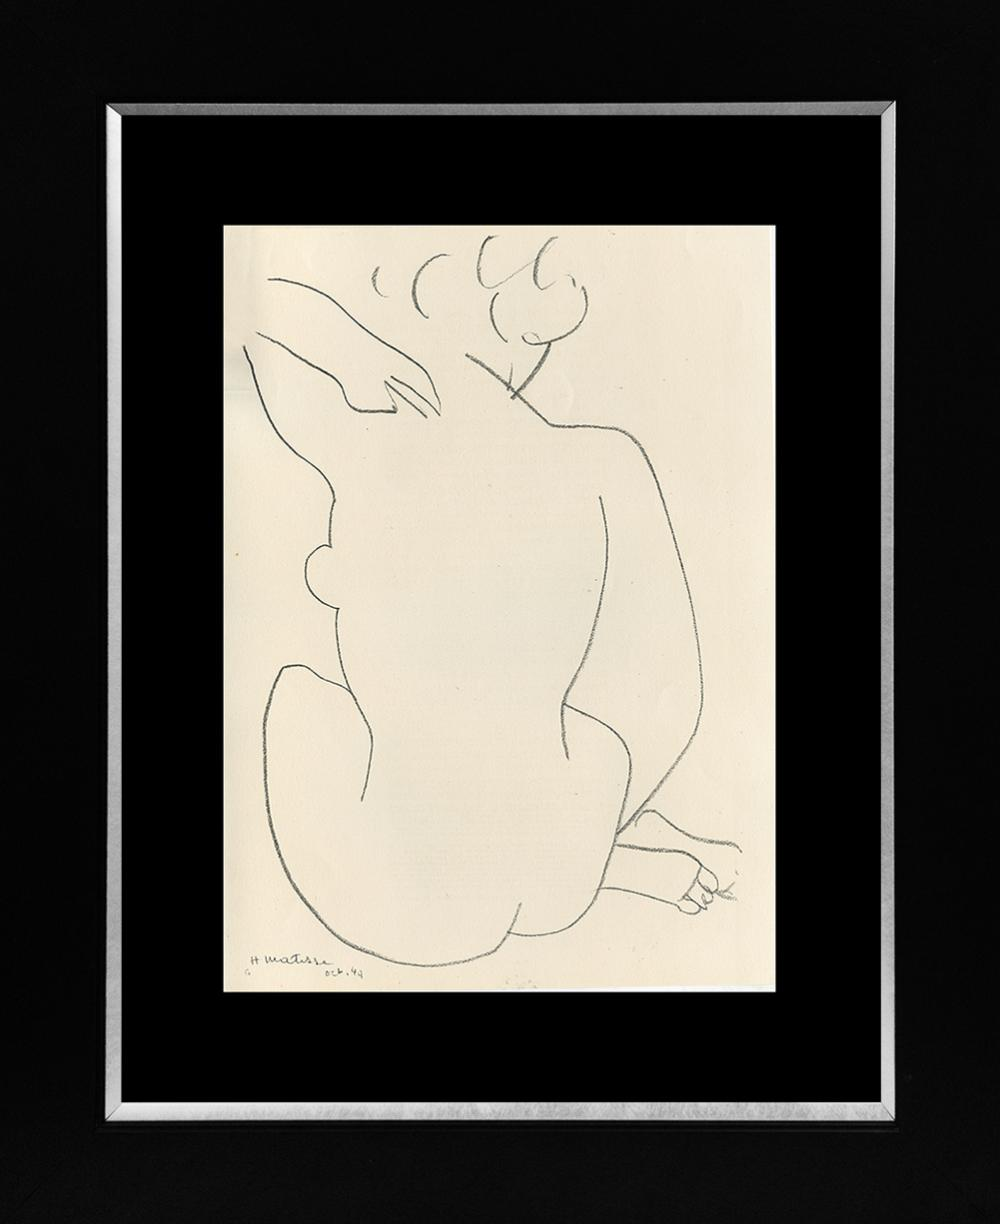 Lot 4830: Henri Matisse Lithograph from 1968